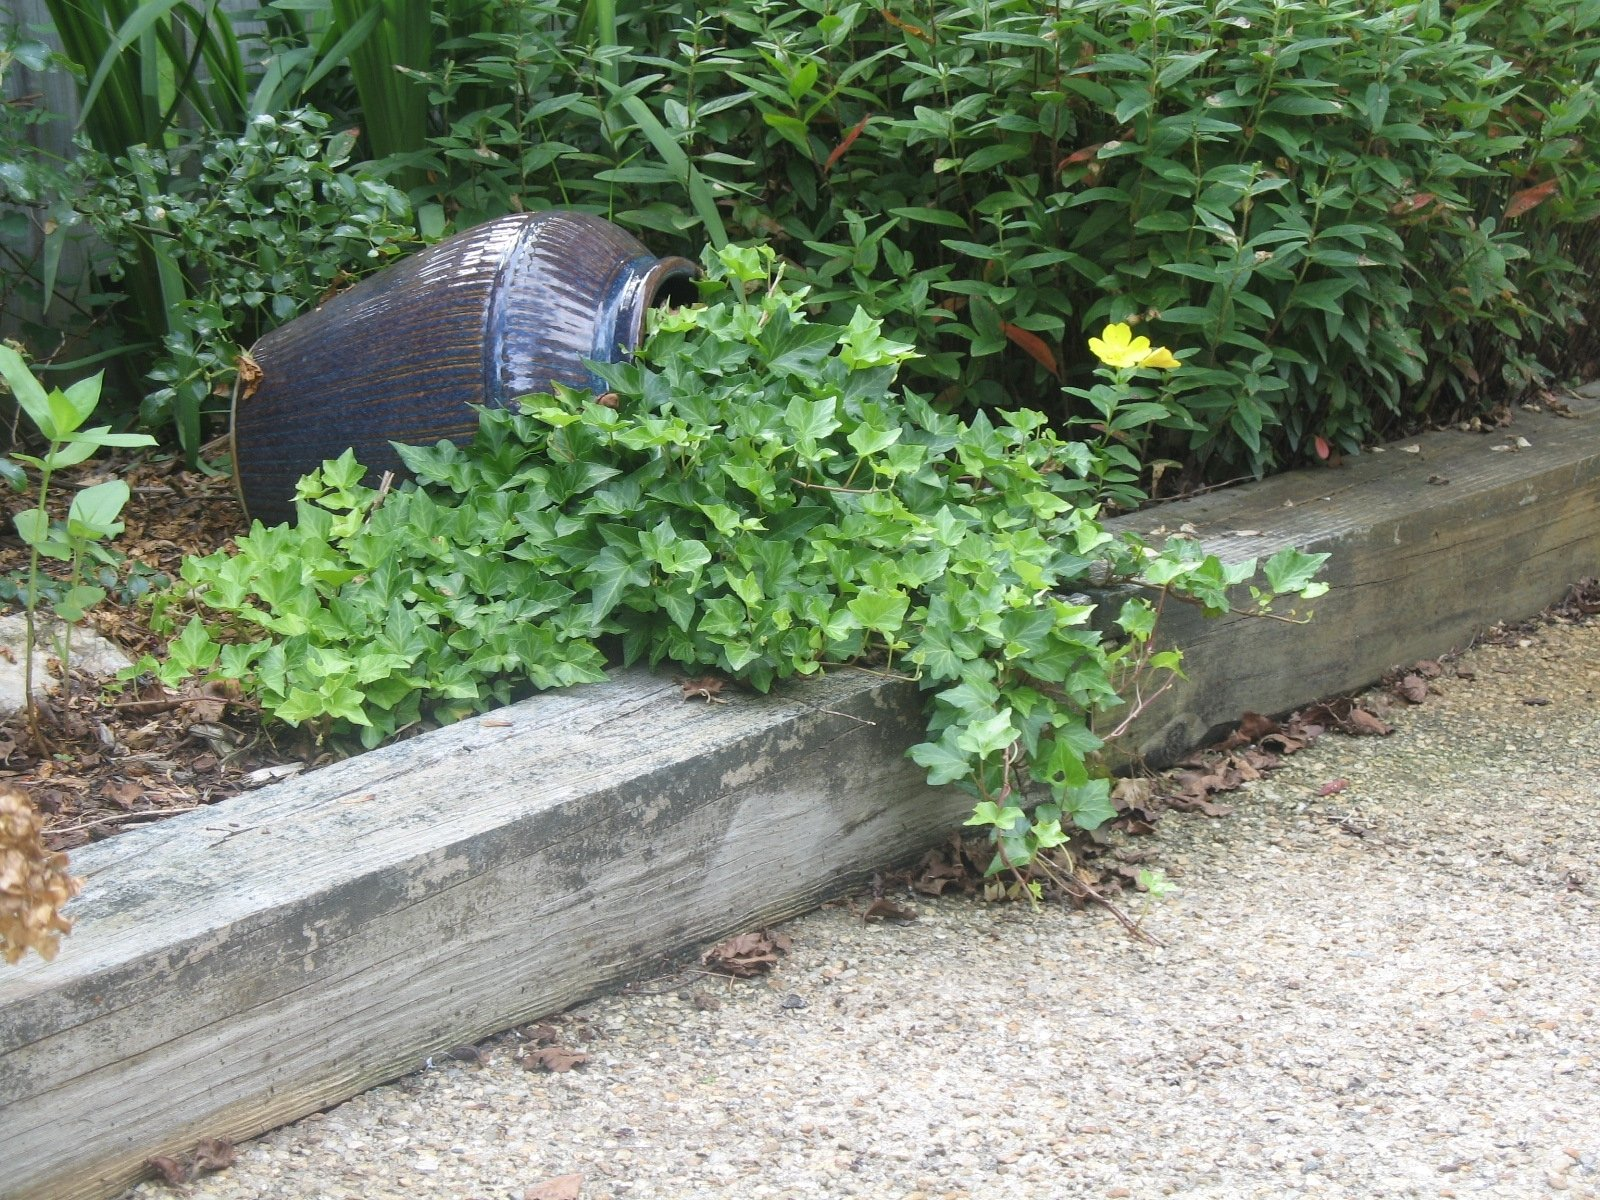 10 Lovable Cheap Flower Bed Edging Ideas awesome do it yourself garden edging ideas lawn uk with wooden 2021